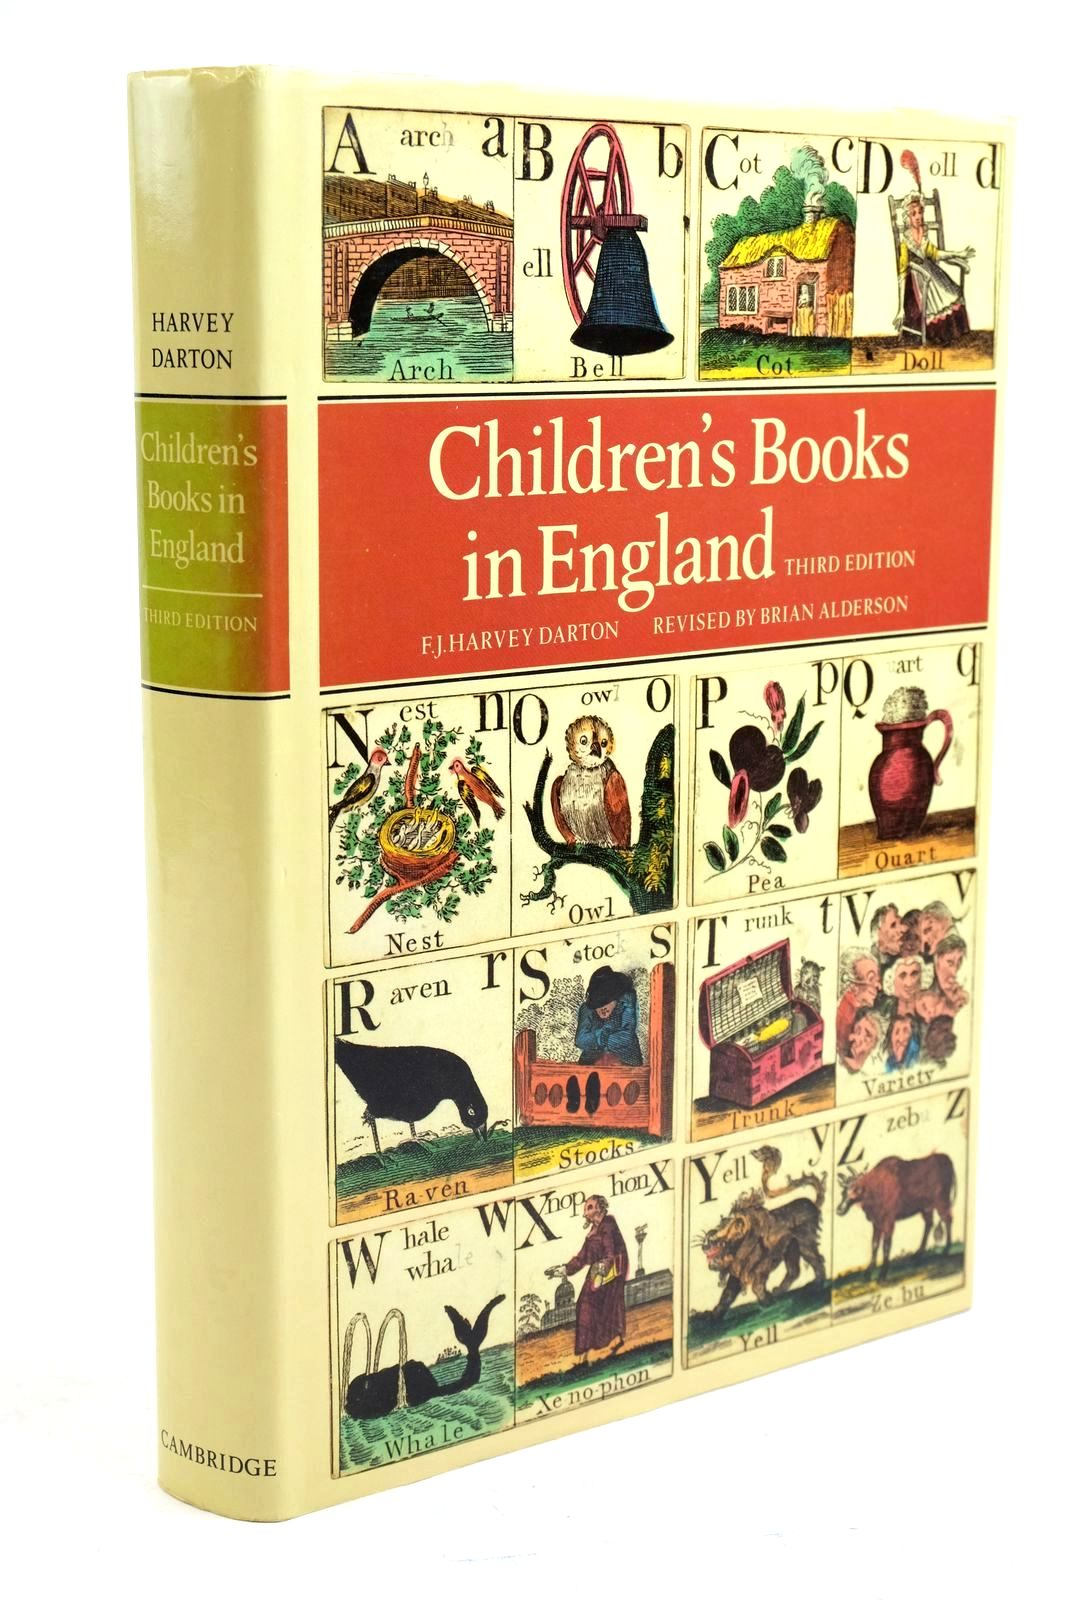 Photo of CHILDREN'S BOOKS IN ENGLAND written by Darton, F.J. Harvey published by Cambridge University Press (STOCK CODE: 1320957)  for sale by Stella & Rose's Books